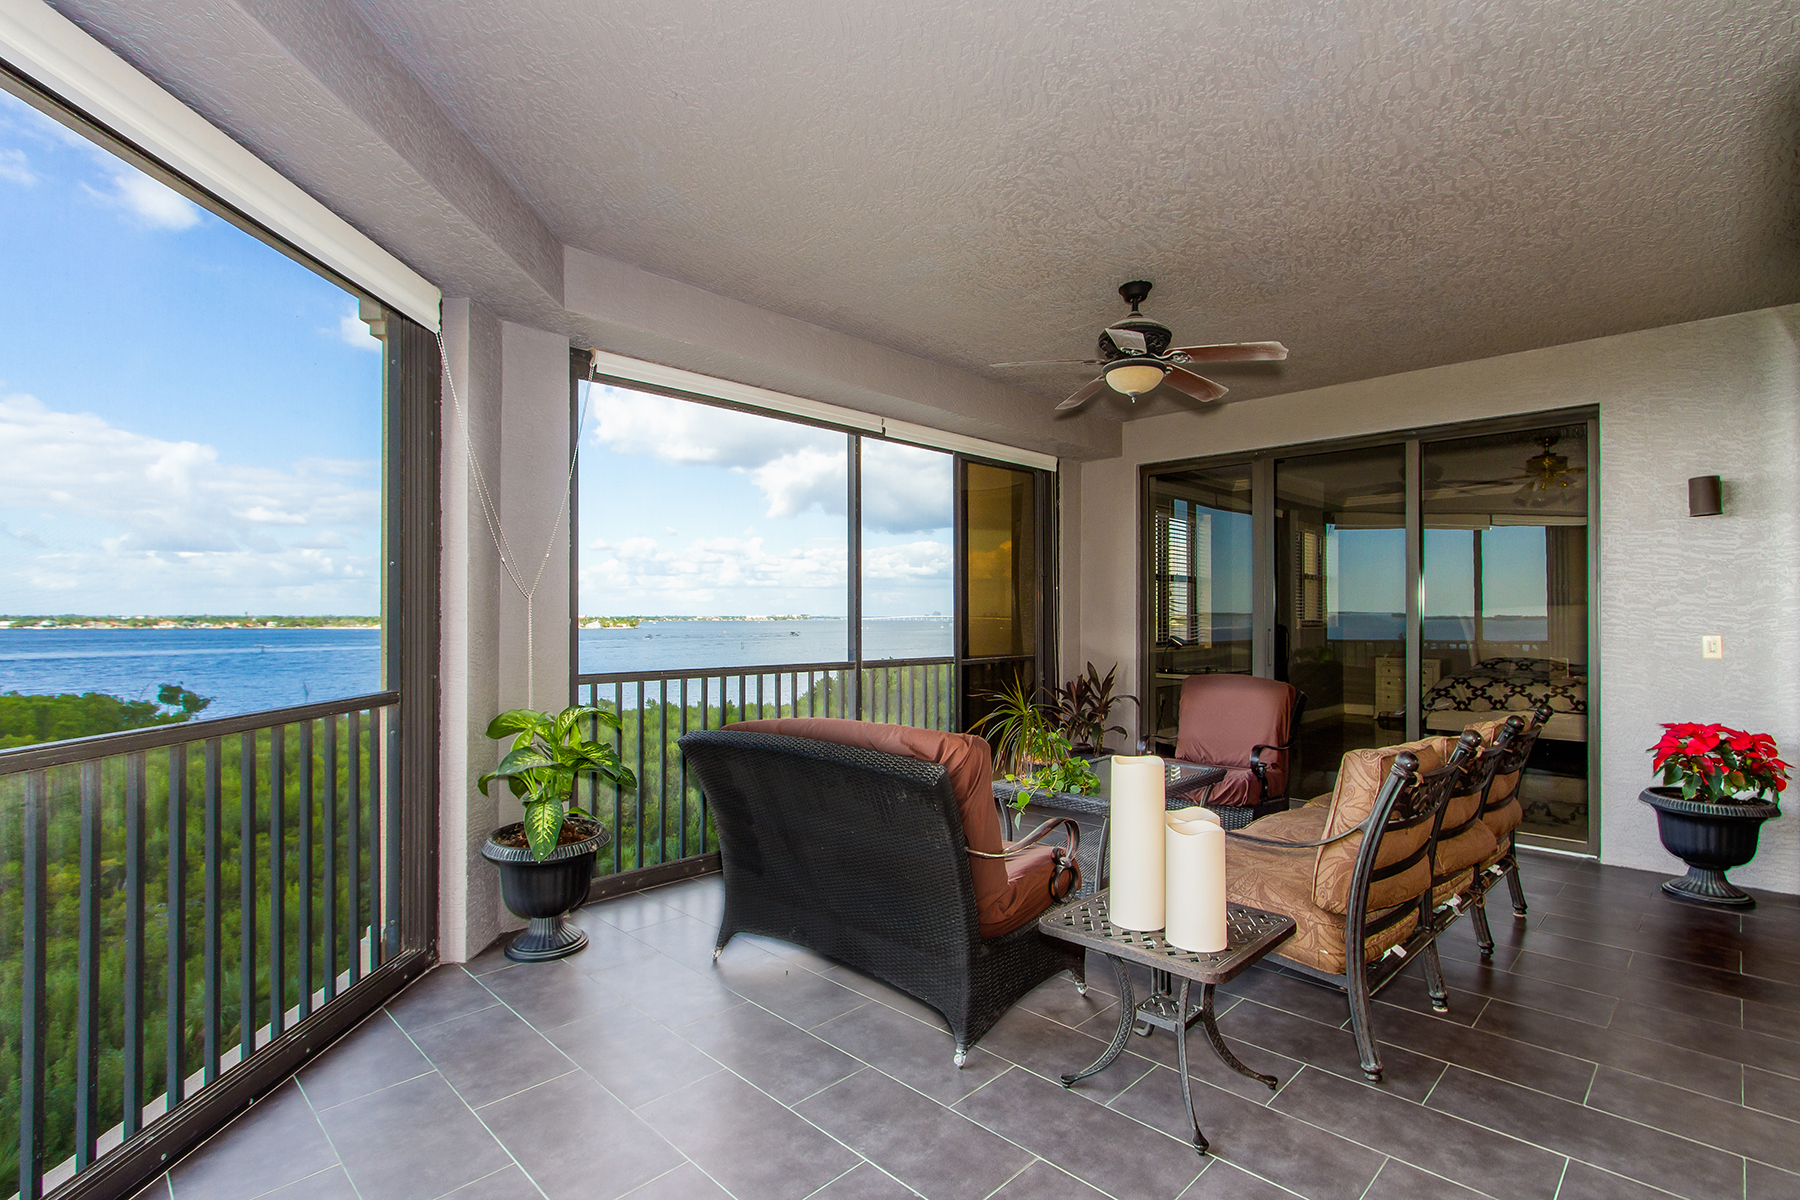 Кондоминиум для того Продажа на GULF HARBOUR YACHT & COUNTRY CLUB - PALMAS DEL SOL 11600 Court Of Palms 402 Fort Myers, Флорида, 33908 Соединенные Штаты